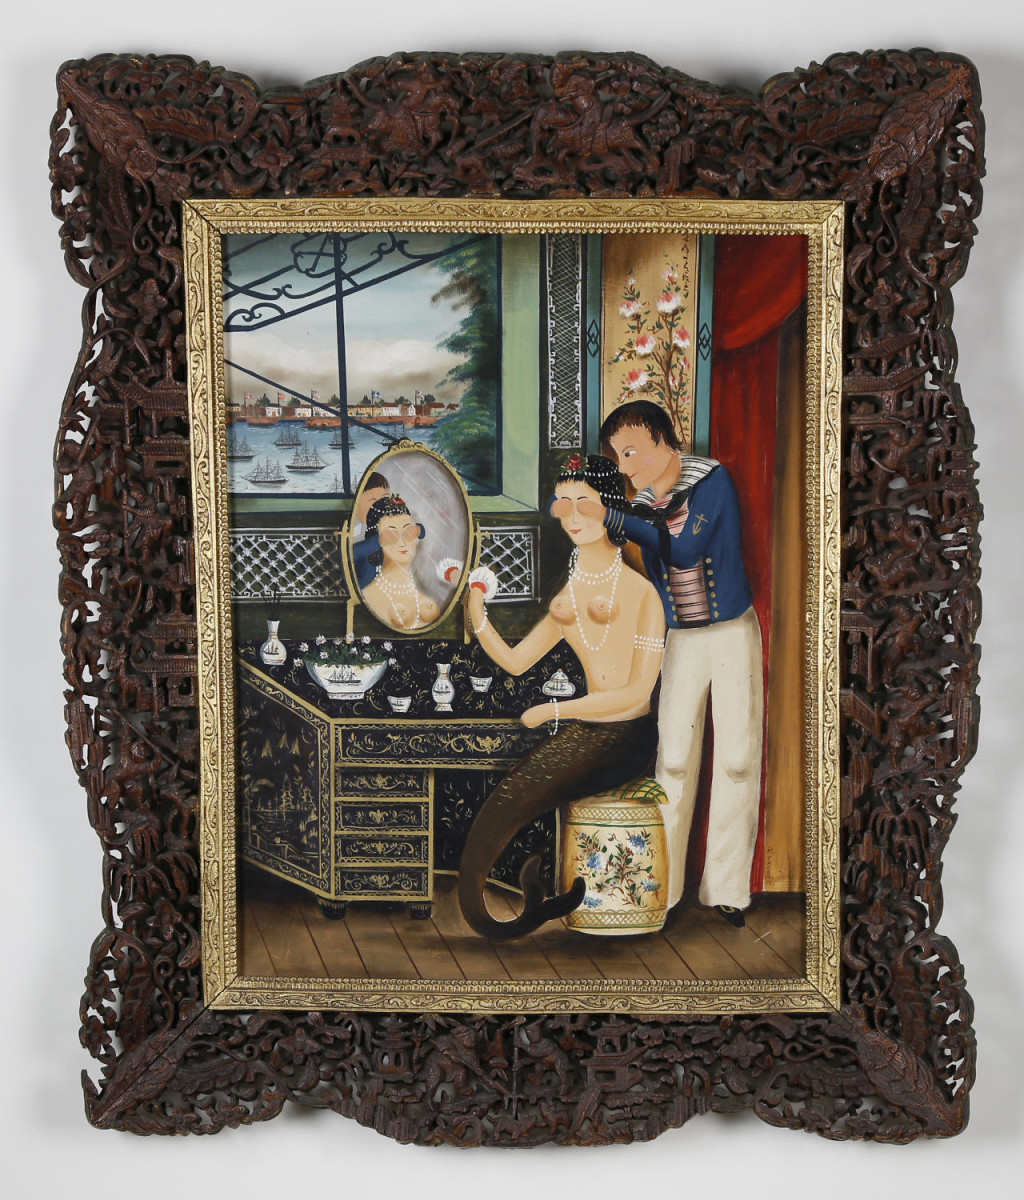 "Ralph Eugene Cahoon Jr. (1910-1982) oil on Masonite ""Sailor's Surprise,"" a Chinese export interior scene with sailor and his mermaid sitting at her chinoiserie dressing table overlooking the Hongs at Canton, China, in a most exceptional carved and gilt Chinese export period frame, circa 1800; 24-1/2"" x 20-3/4"" overall. Estimate: $50,000-$60,000."